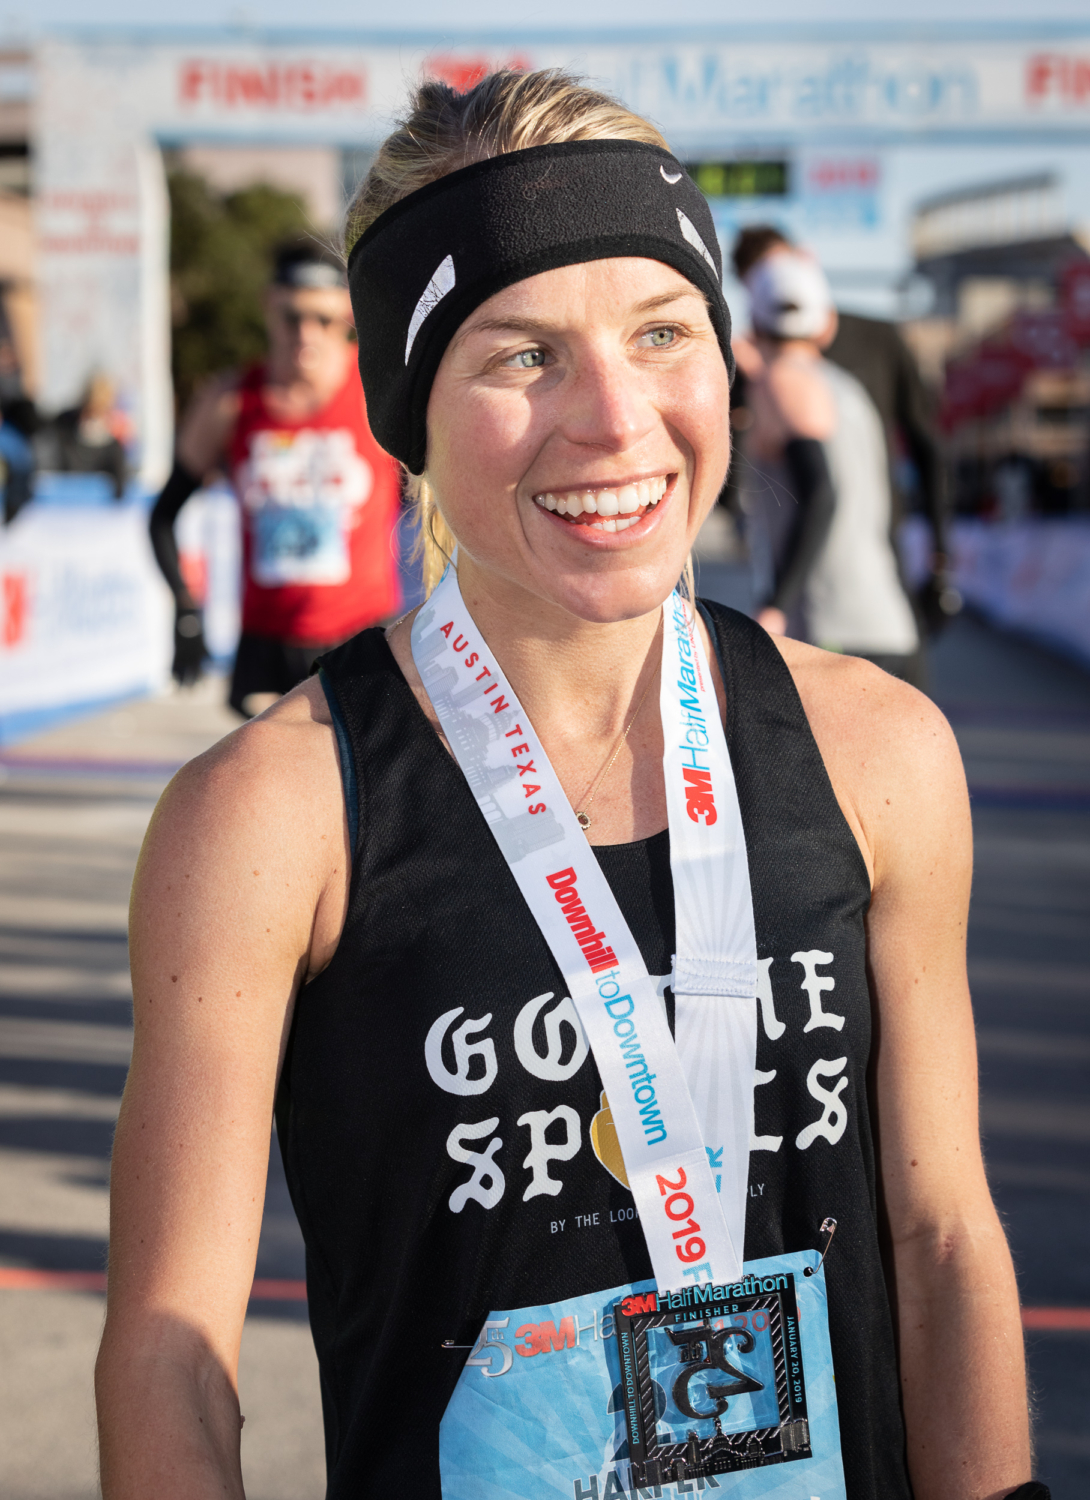 Jess Harper is all smile after her second 3M Half Marathon victory in as many years.